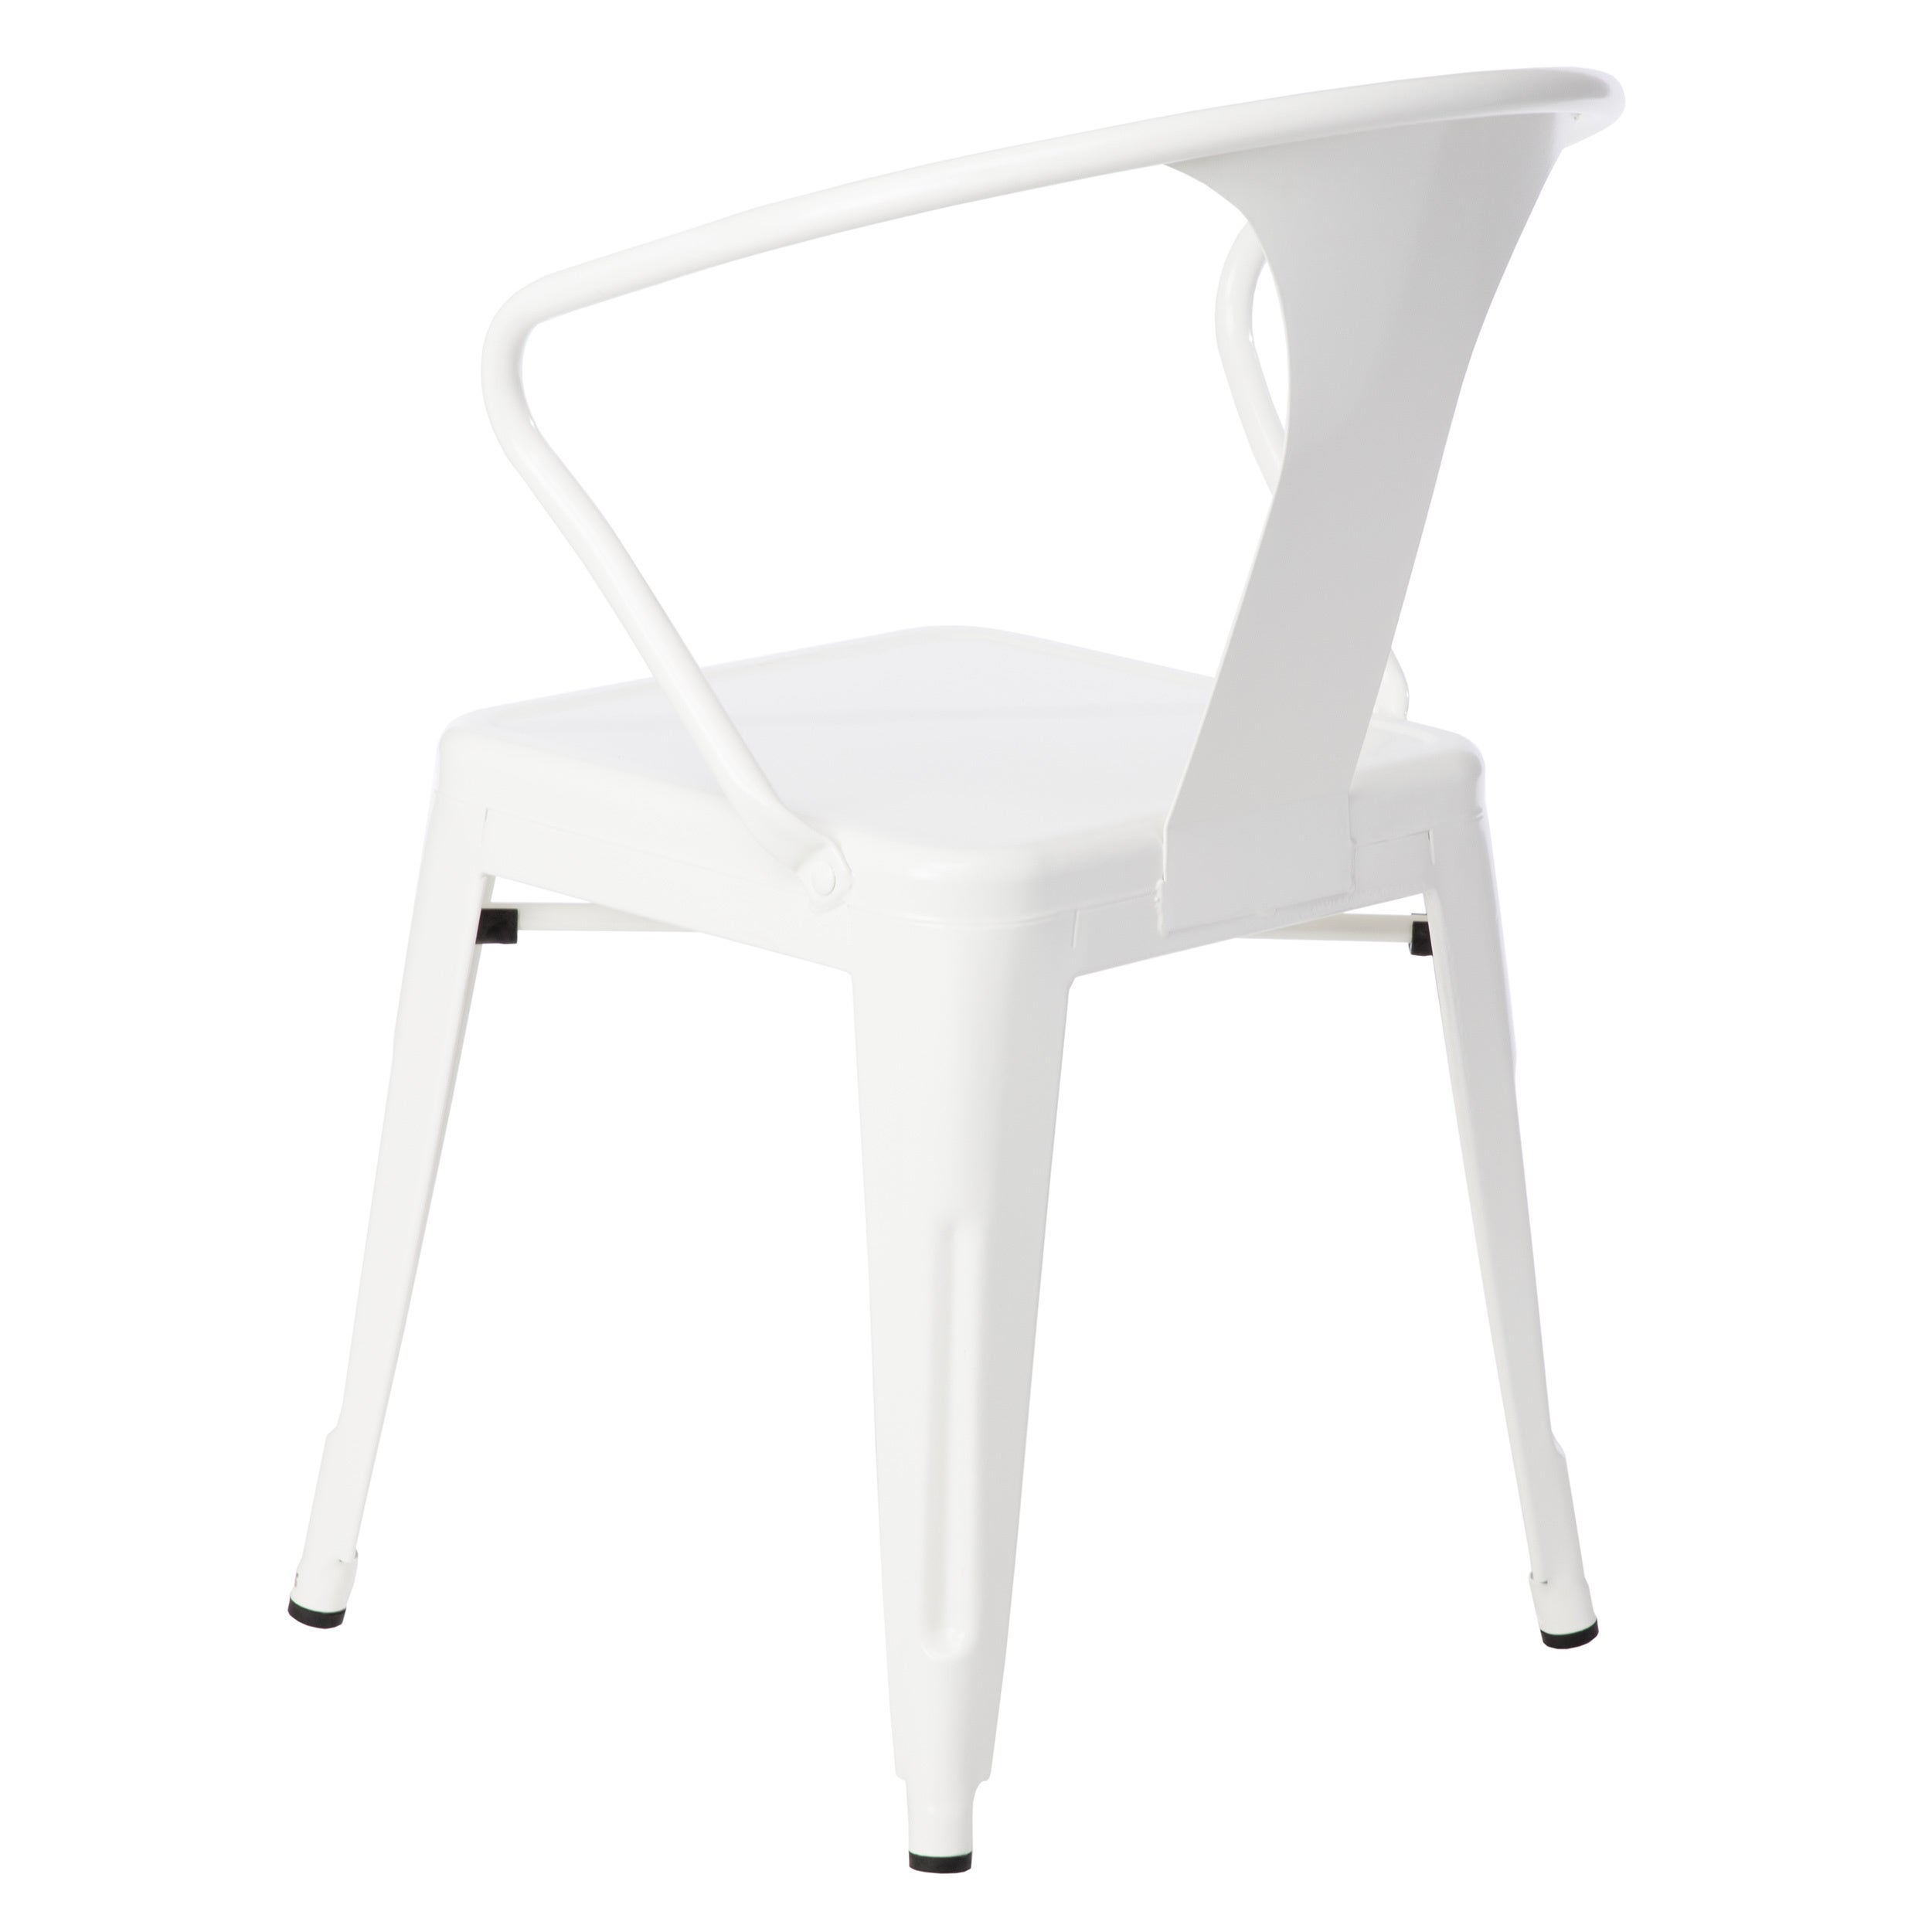 Attractive White Tabouret Stacking Chairs (Set Of 4)   Free Shipping Today    Overstock.com   12950047